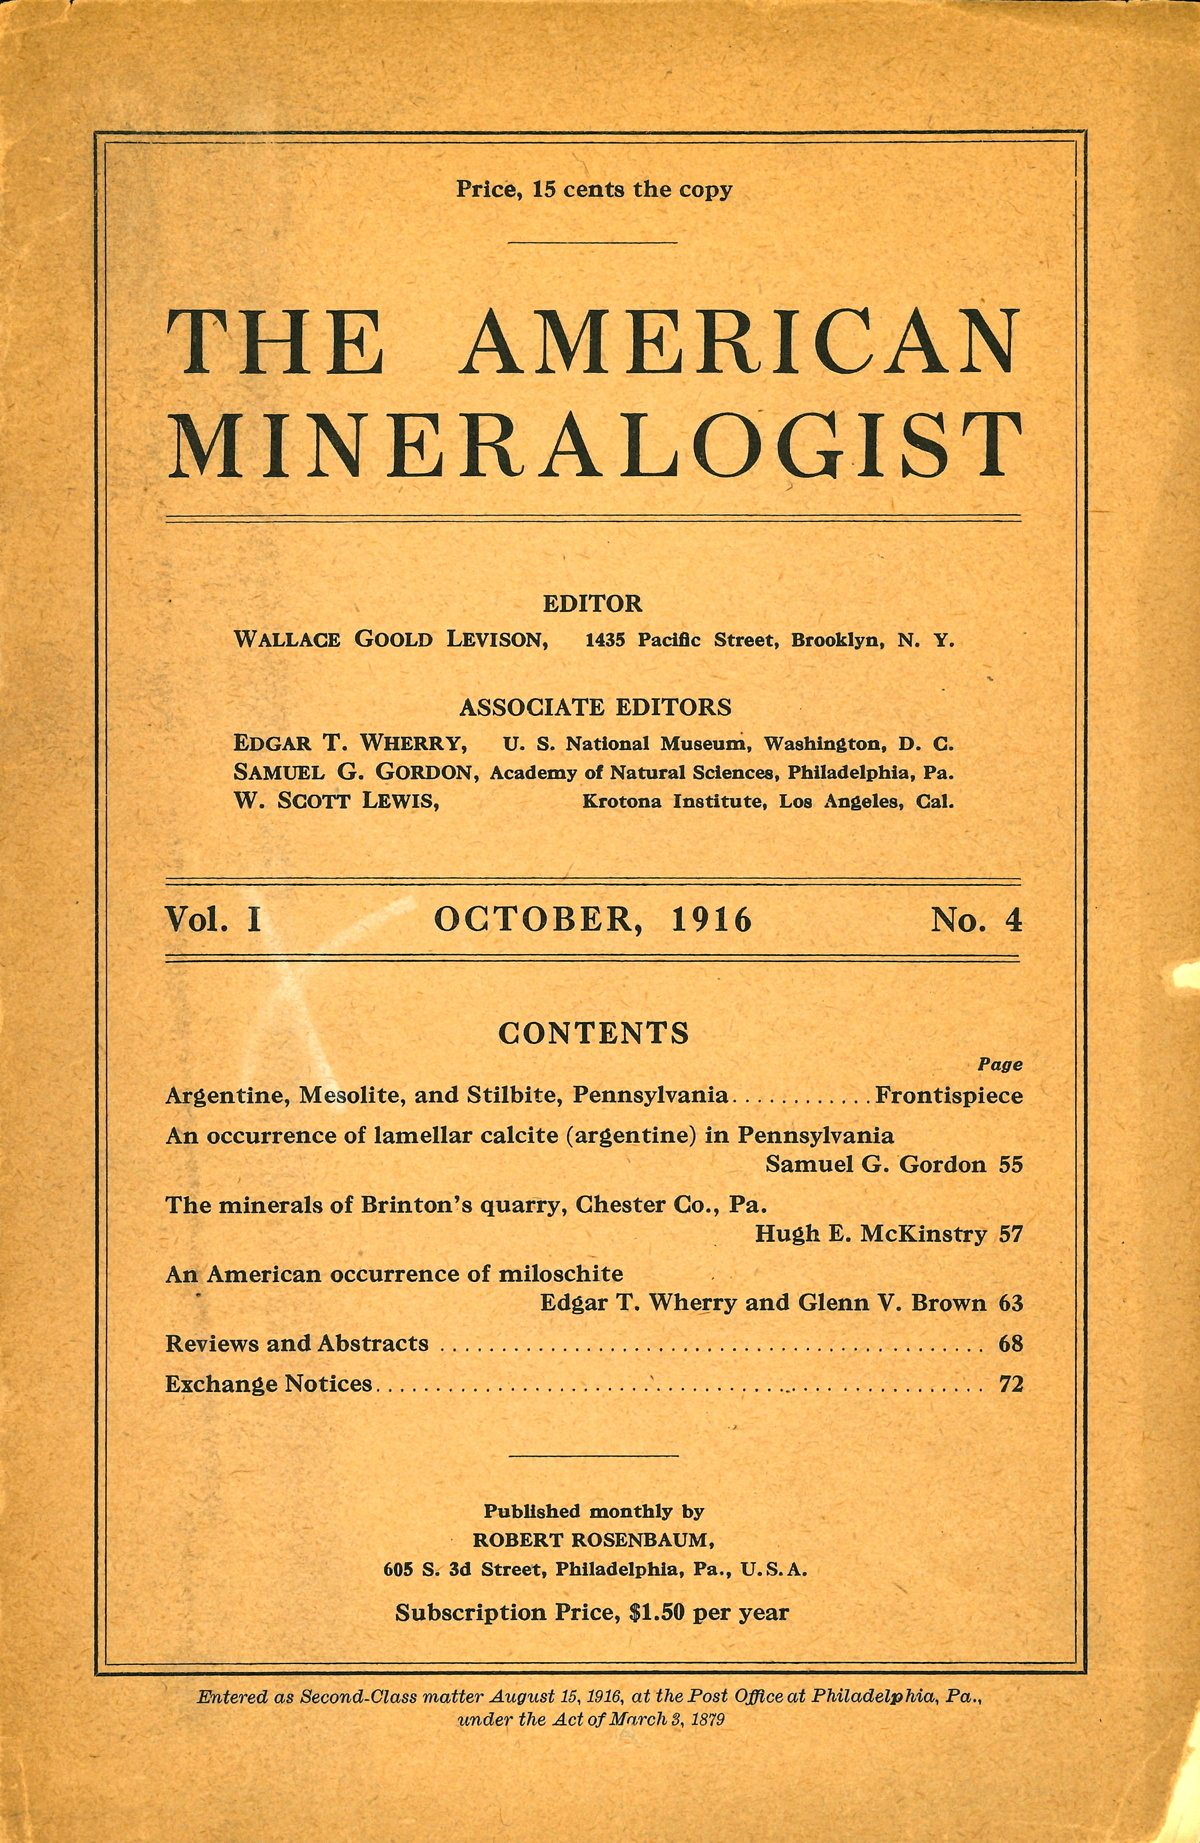 Cover of the 1920 American Mineralogist